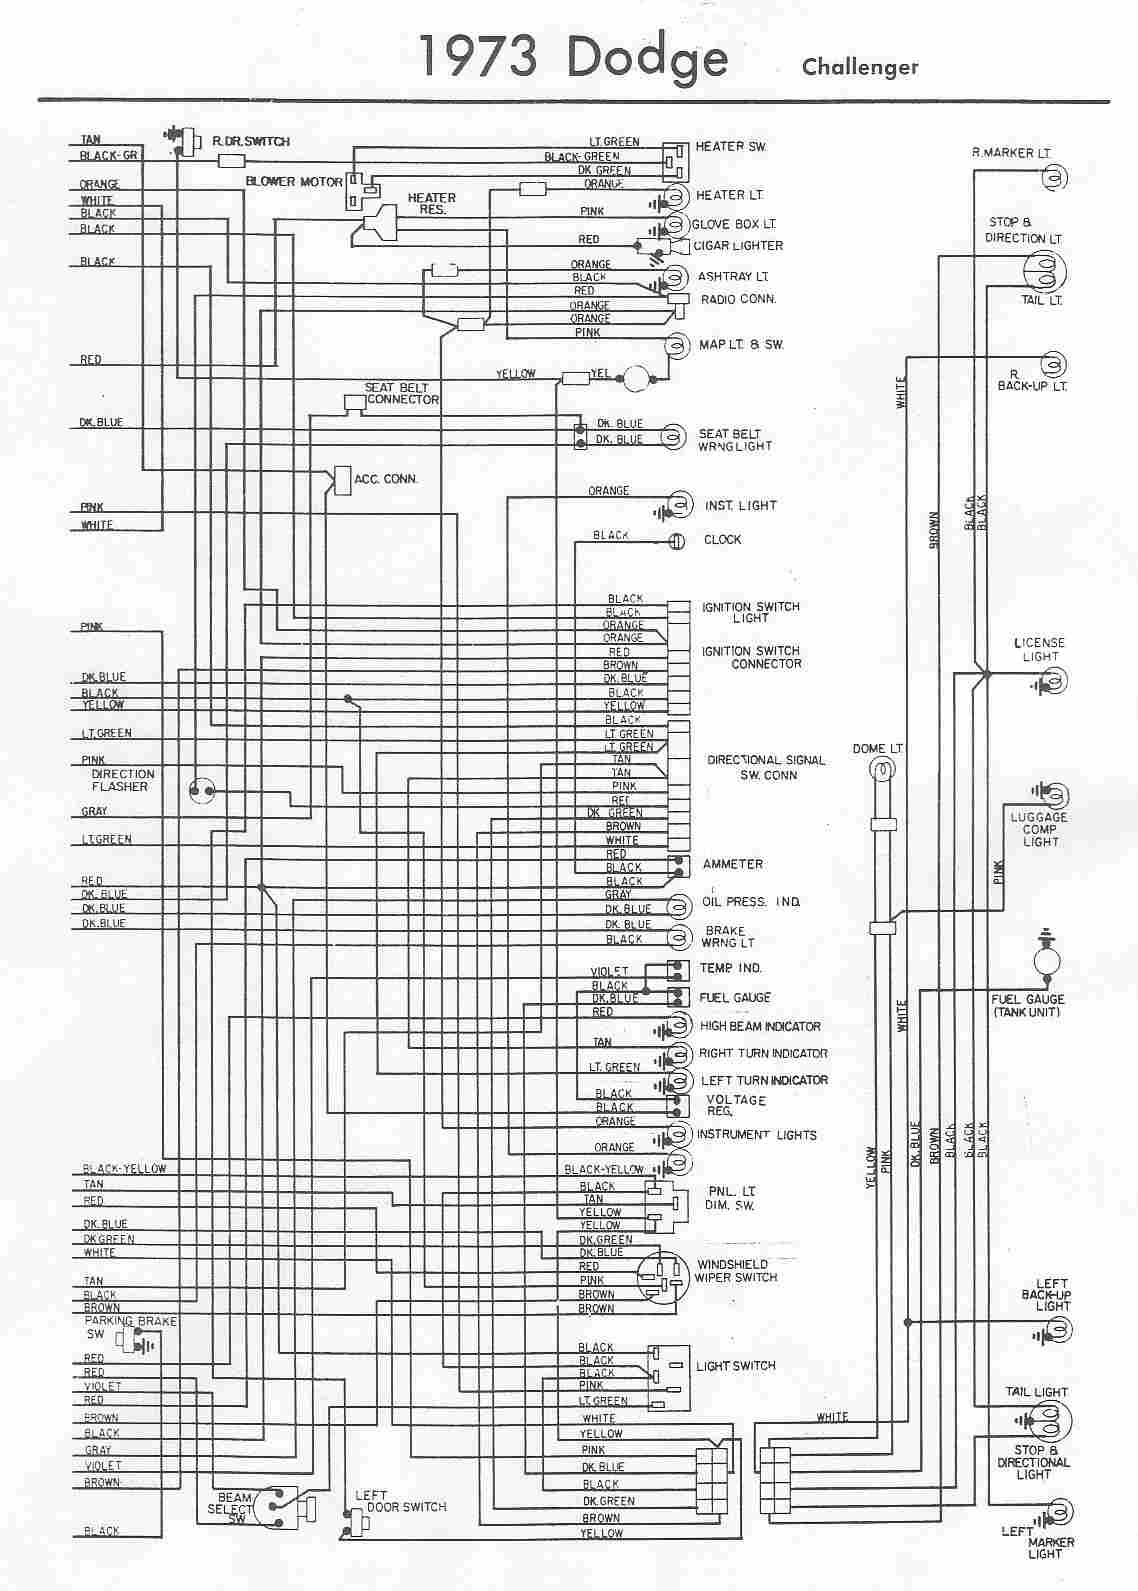 fuse diagram for 2006 dodge charger dodge - car manuals, wiring diagrams pdf & fault codes